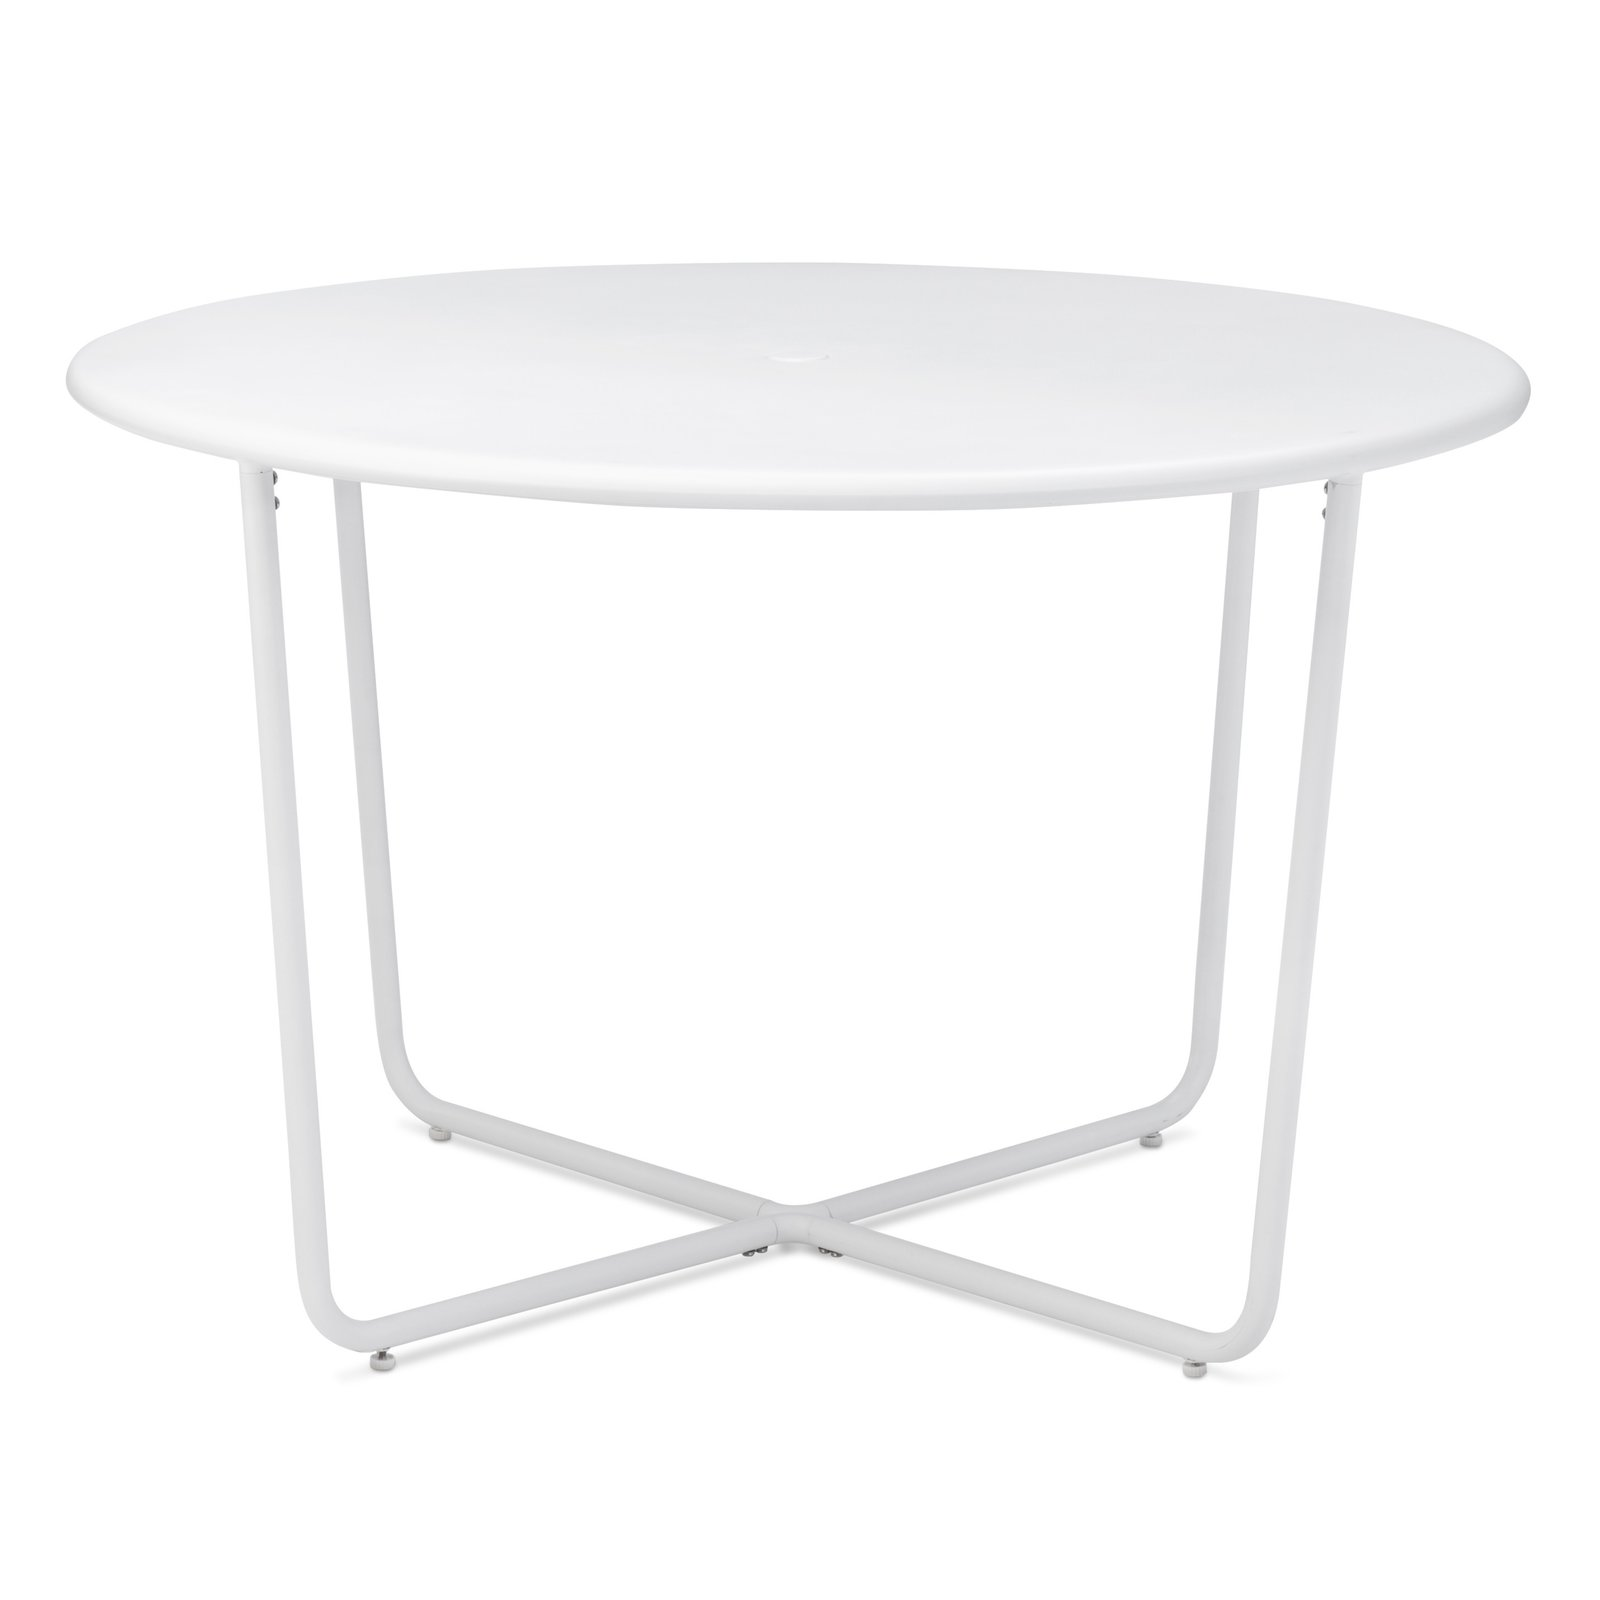 Round Dining Table, $239.99; designed by Chris Deam and Nick Dine for Modern by Dwell Magazine for Target   Photo 5 of 17 in Modern by Dwell Magazine: Outdoor Collection